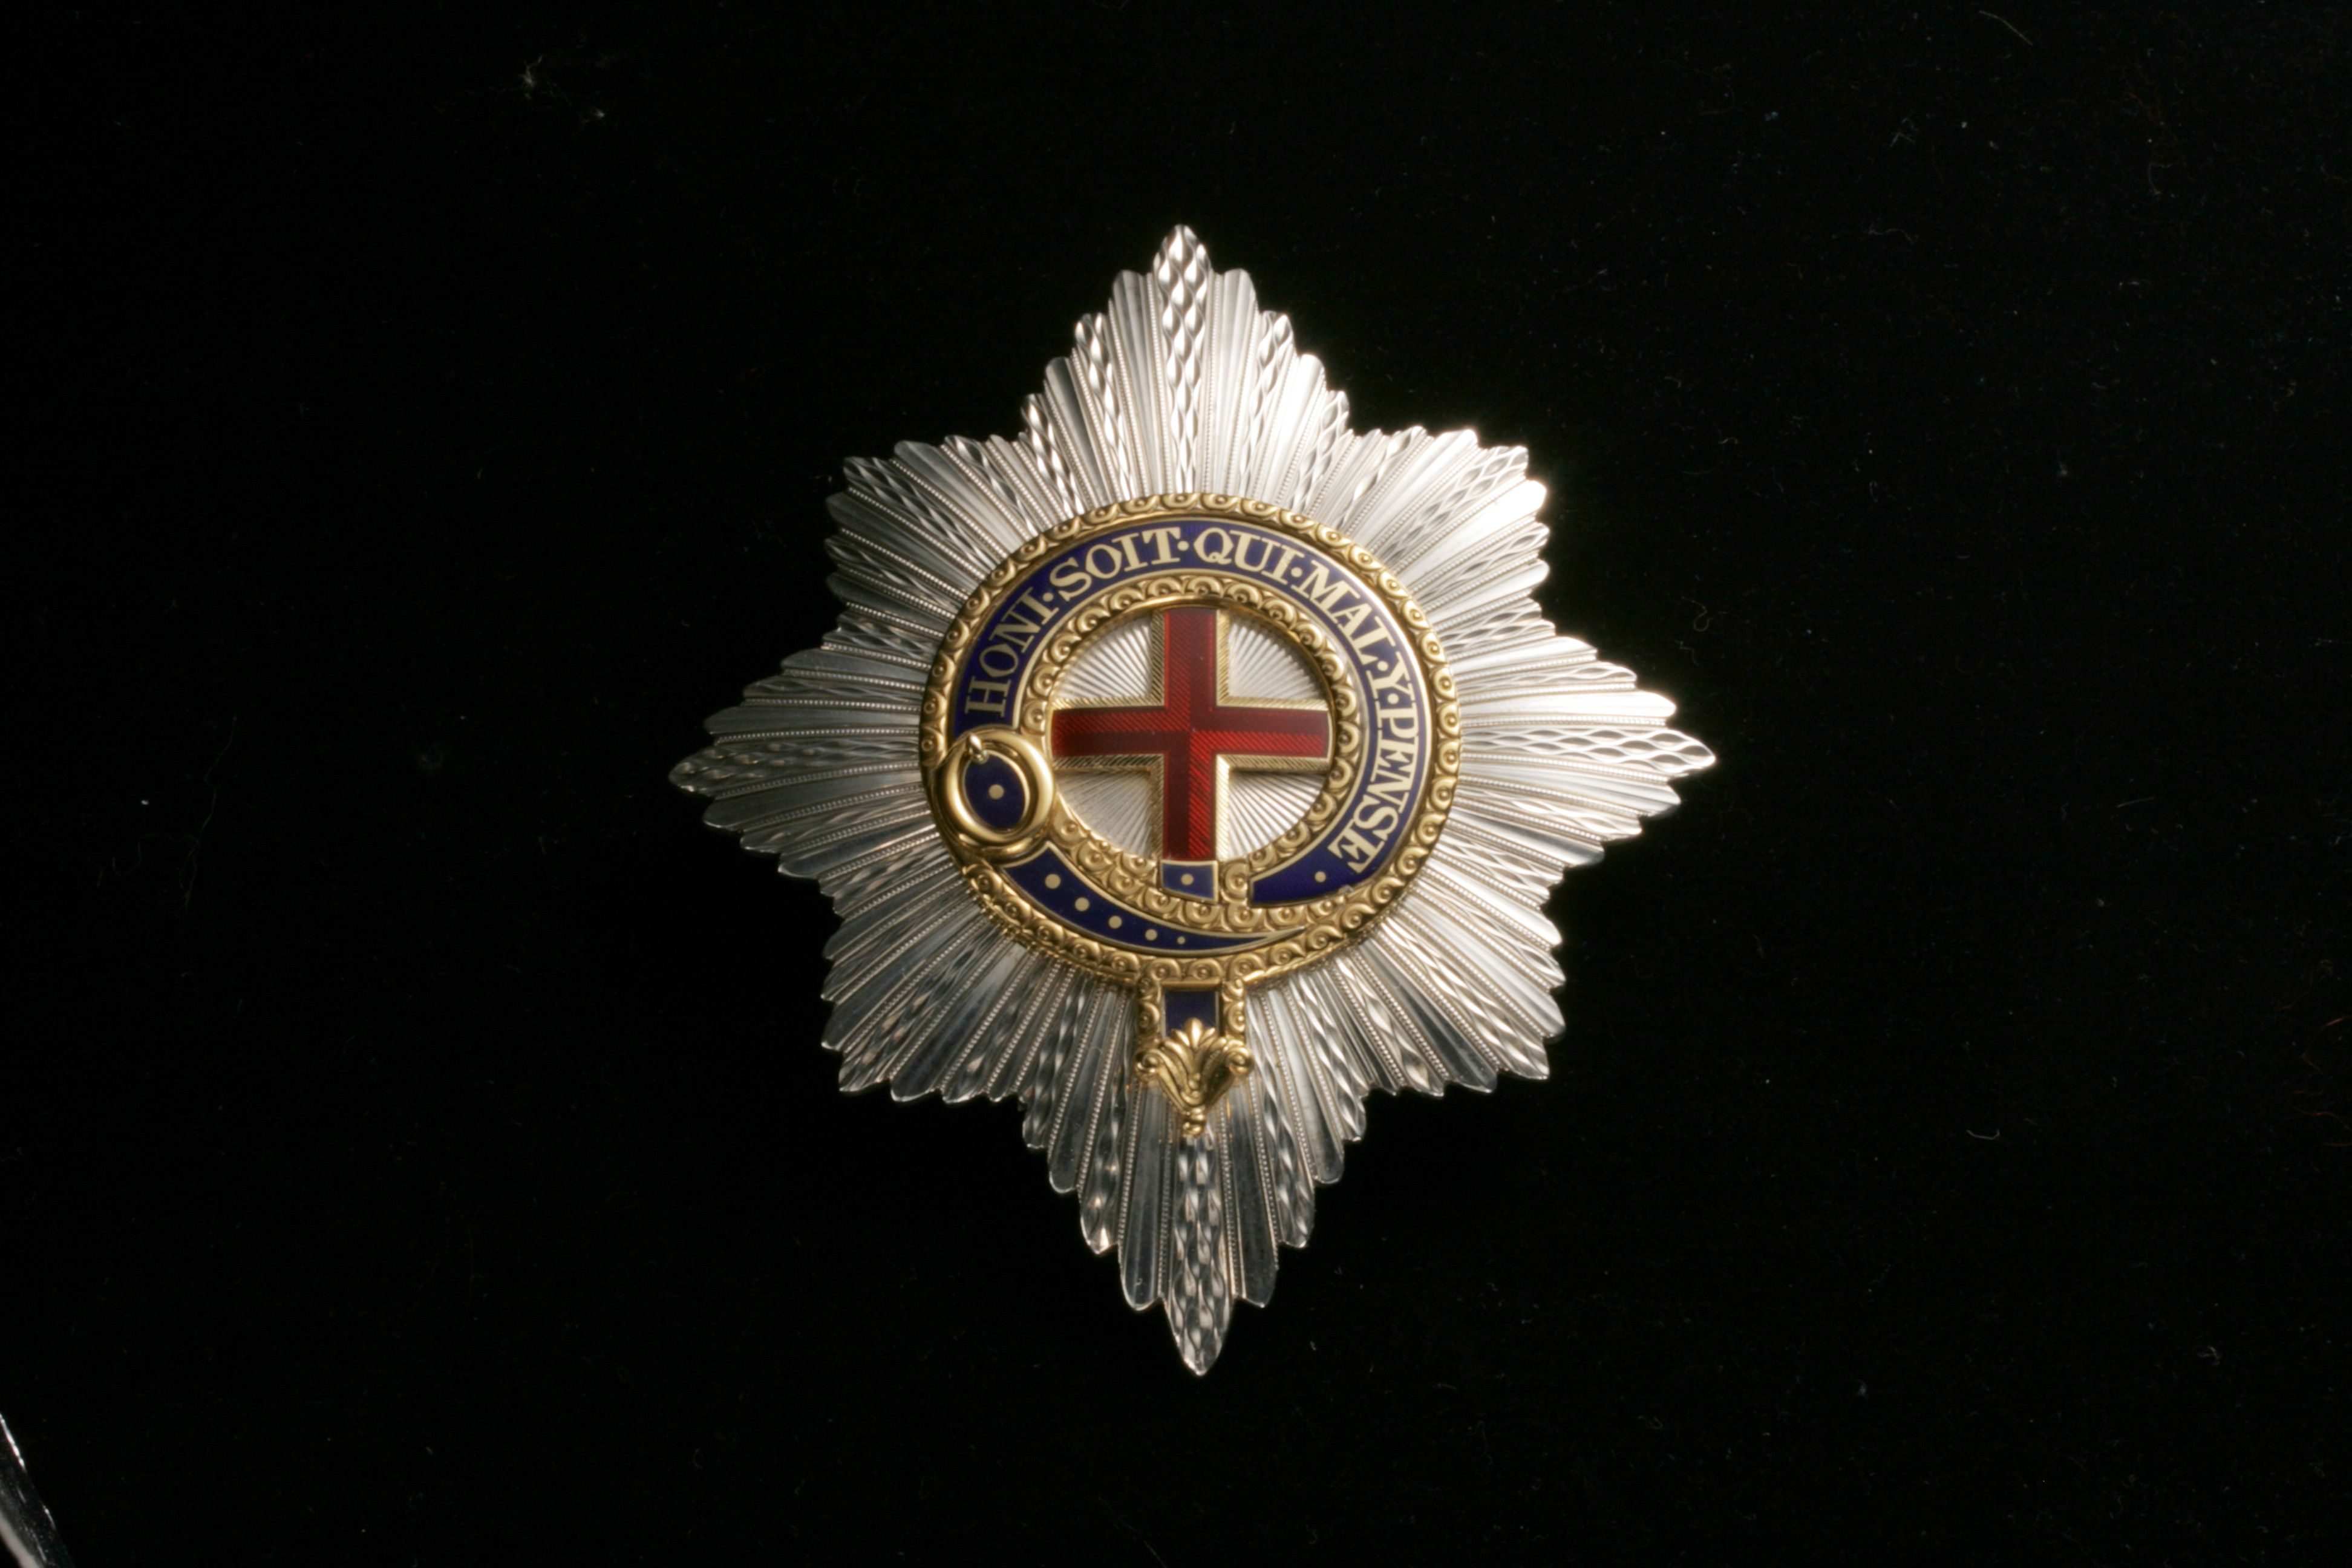 The Most Noble Order Of The Garter Order Of The Garter Clove Jewels